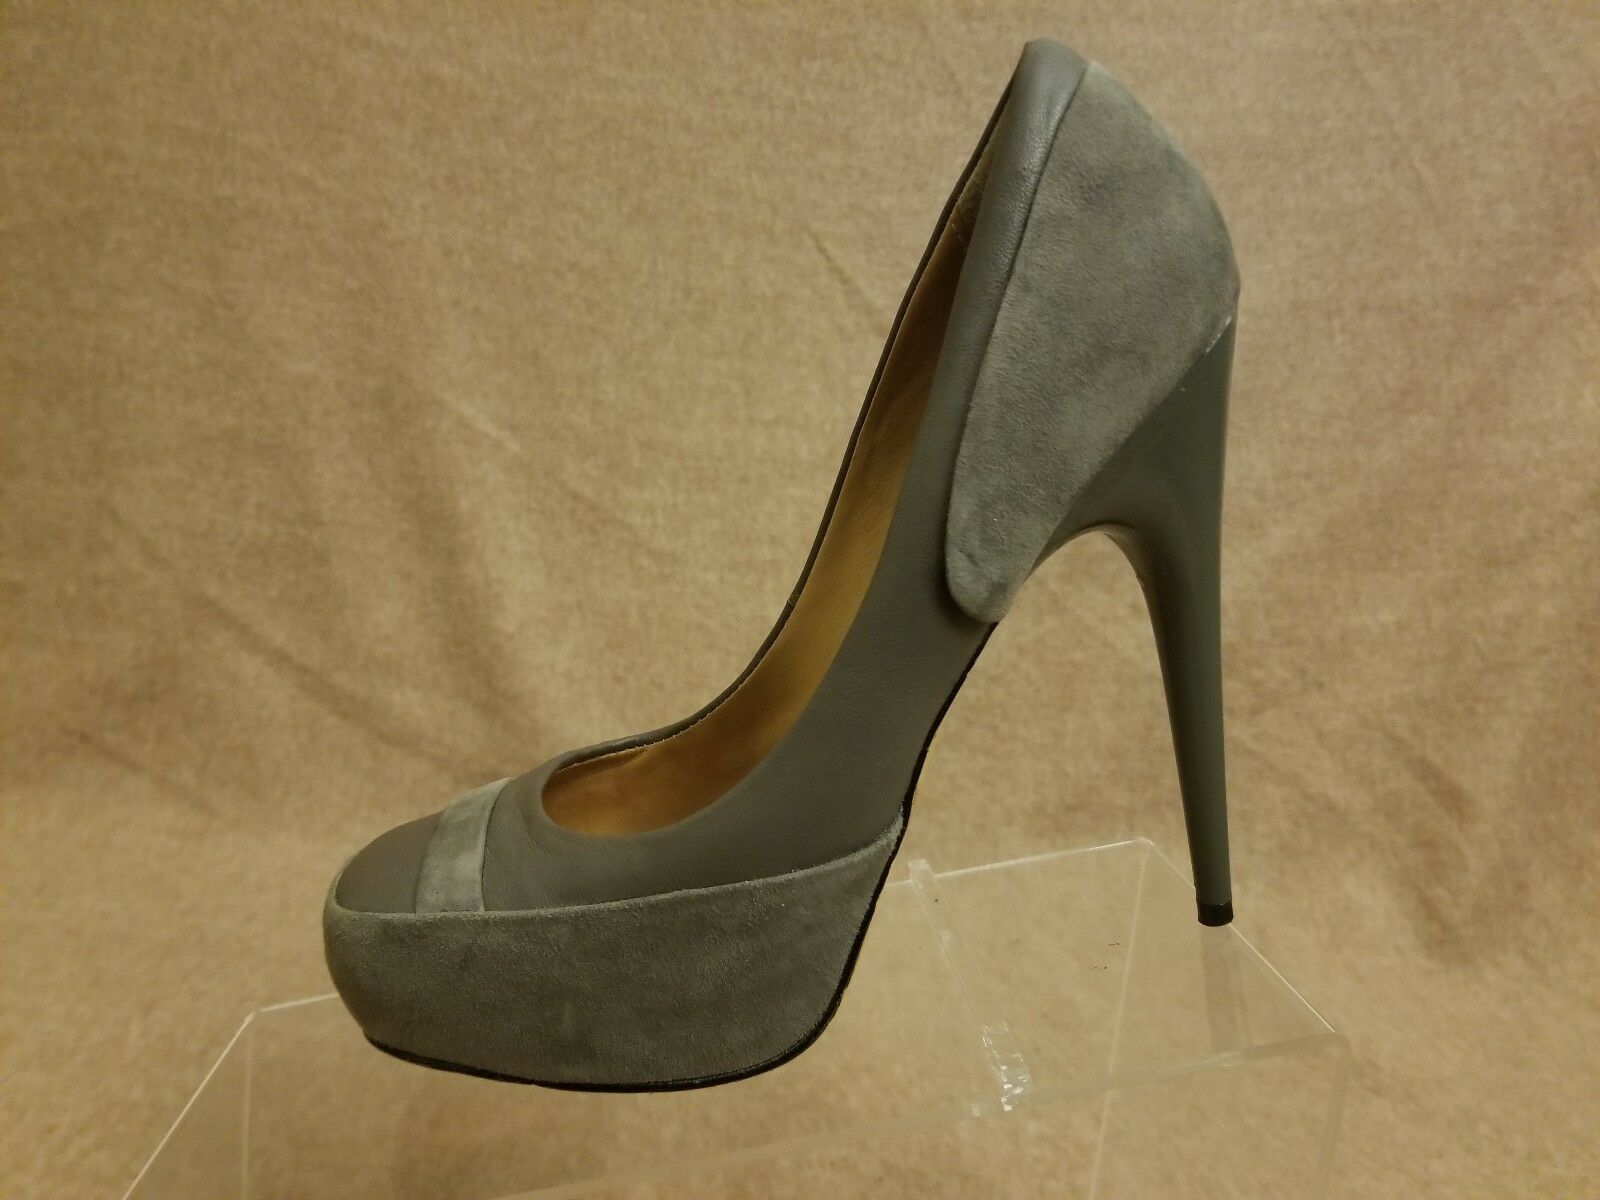 L.A.M.B. Damens Leder Square Suede Gray Square Leder Toe High Heel Pumps Schuhes Größe 6.5 M 37e23f